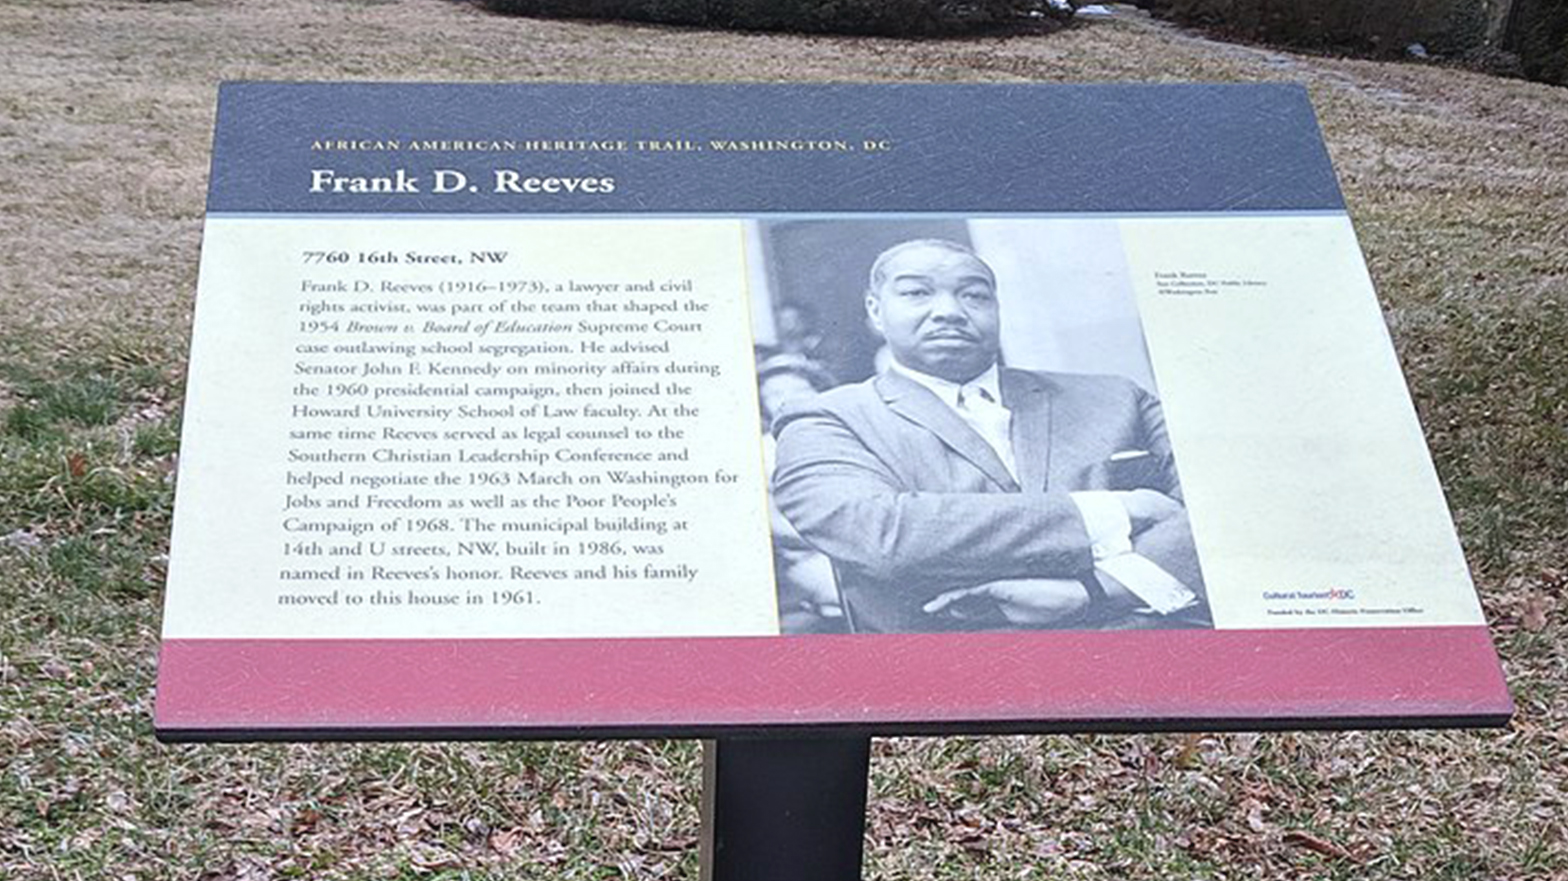 African American Heritage Trails